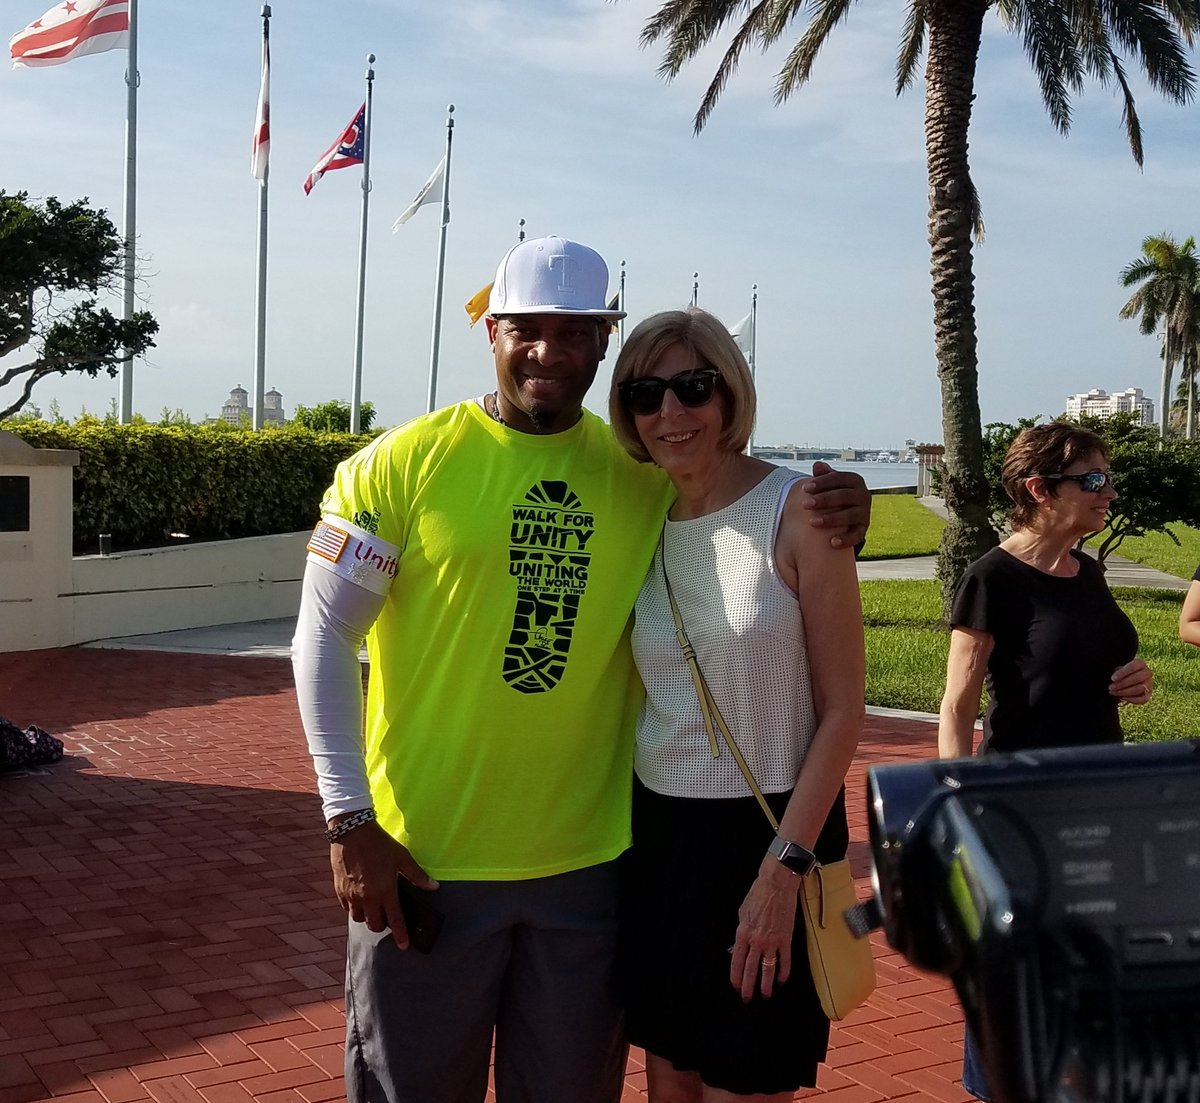 West Palm Beach On Twitter Mayor Jmuoio Wishes X102 3 S Reggie D The Very Best His Walk From To Seattle Is Walking Across